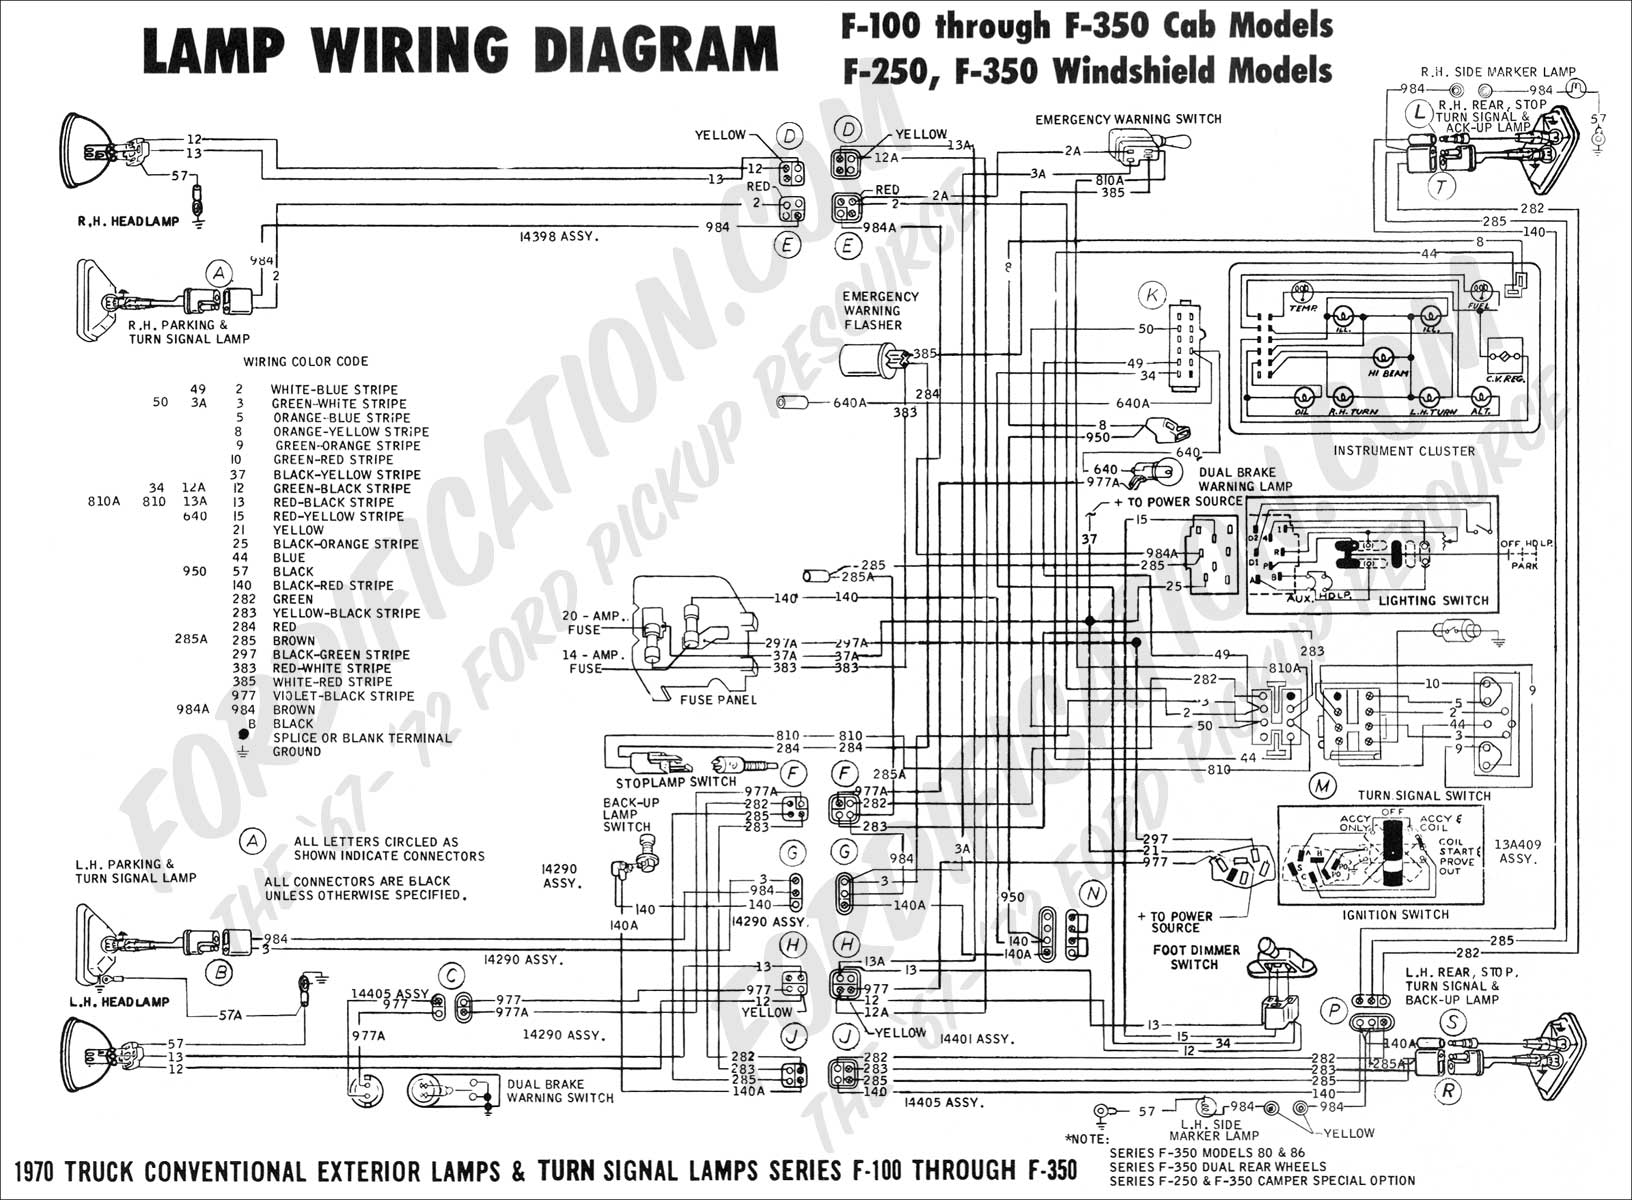 hight resolution of f350 bulb diagram wiring diagram third level f250 fuel system diagram ford f250 bulb diagram wiring